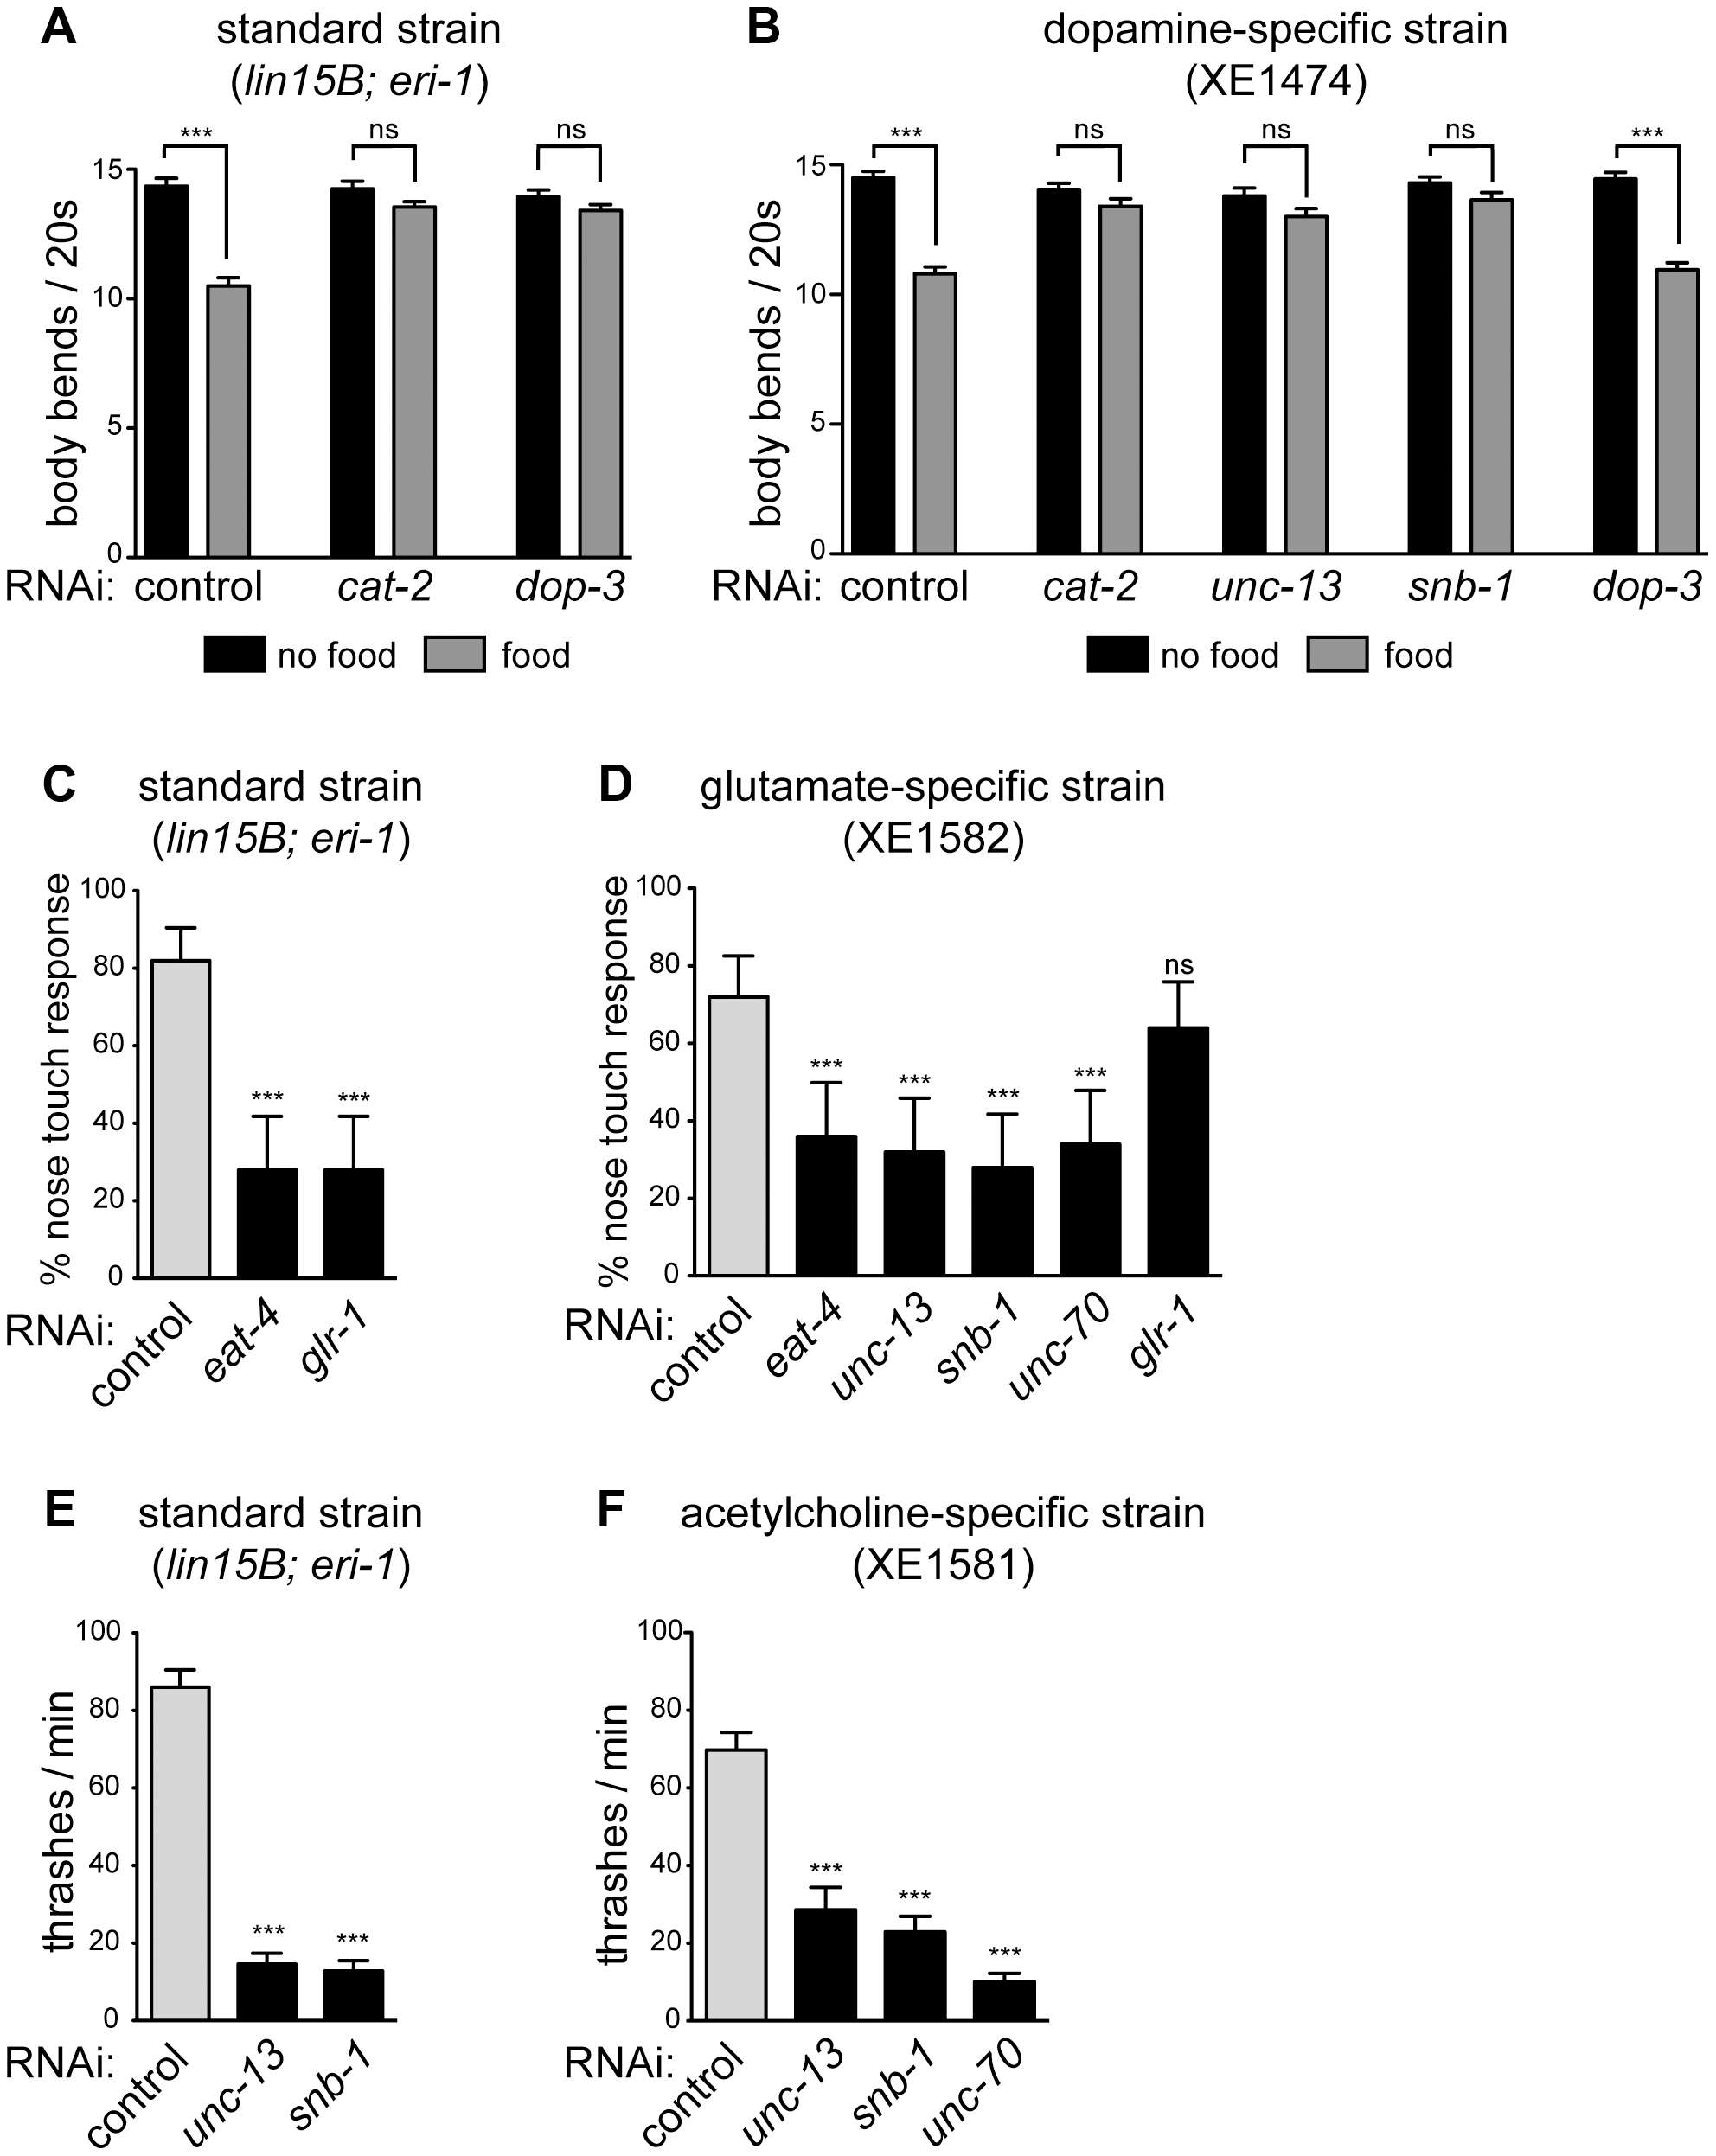 Specific gene knockdown in dopamine, glutamate, and acetylcholine neurons in response to feeding RNAi.